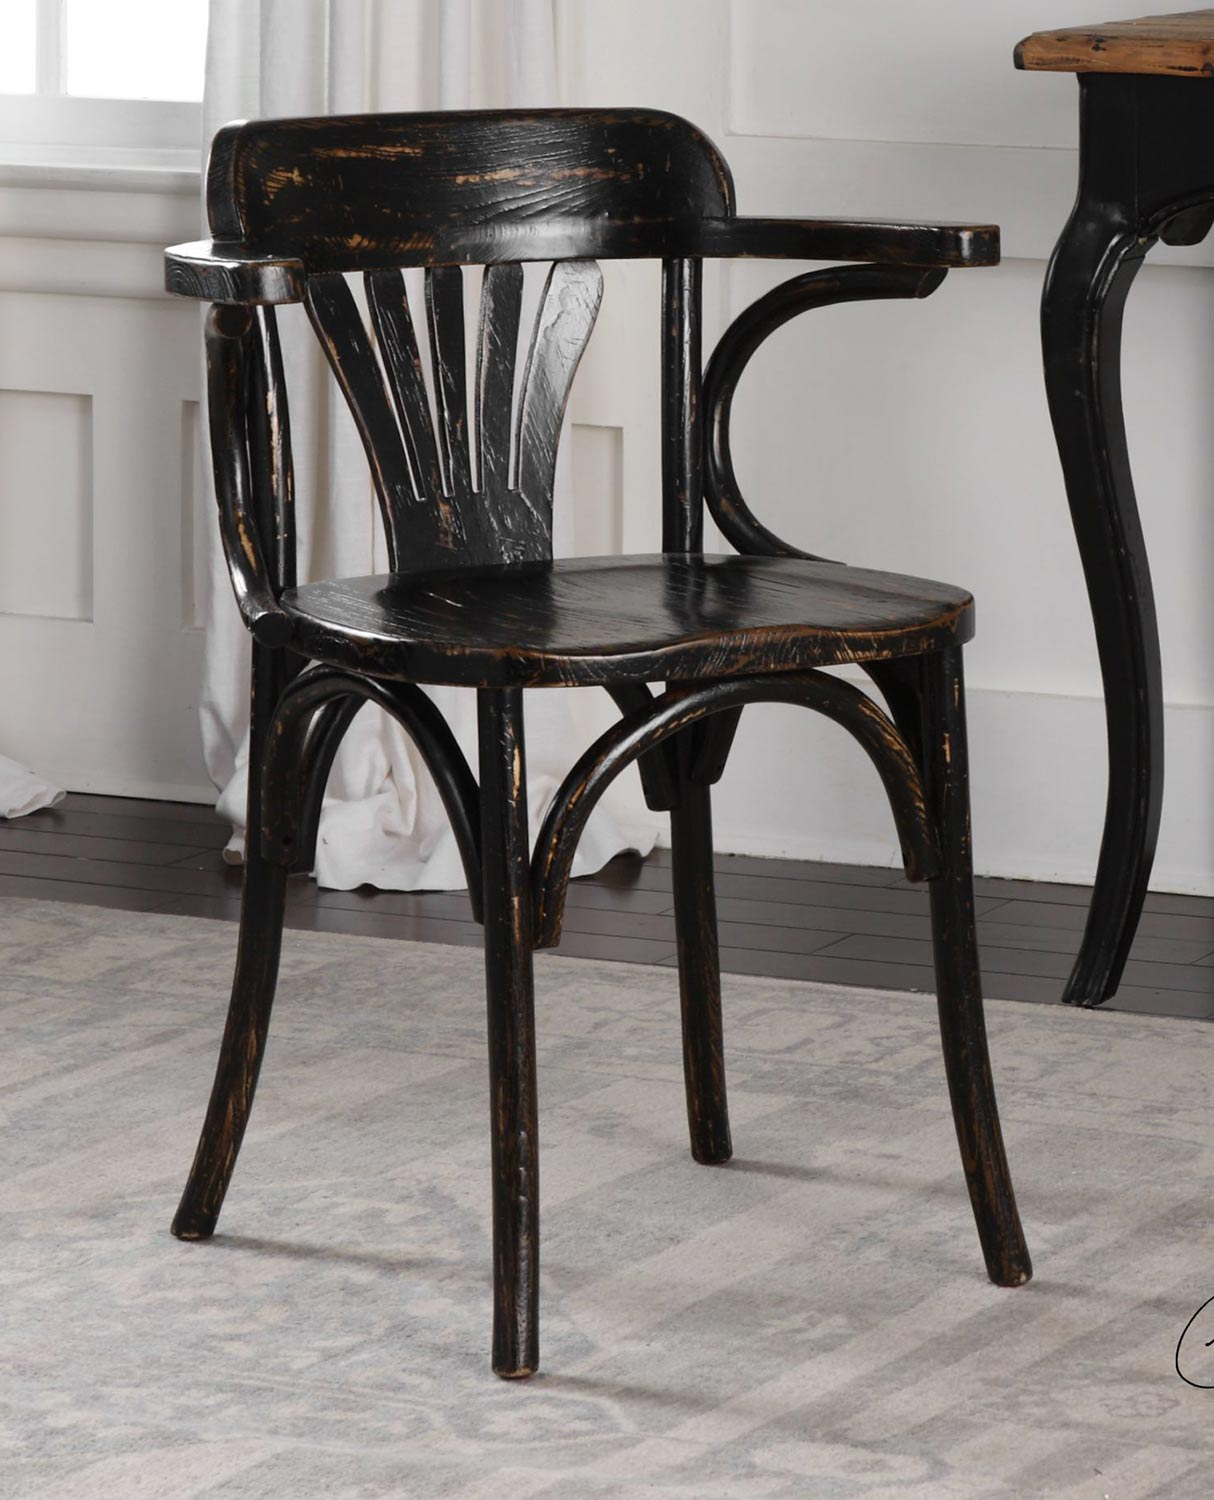 Uttermost Huck Accent Chair - Black